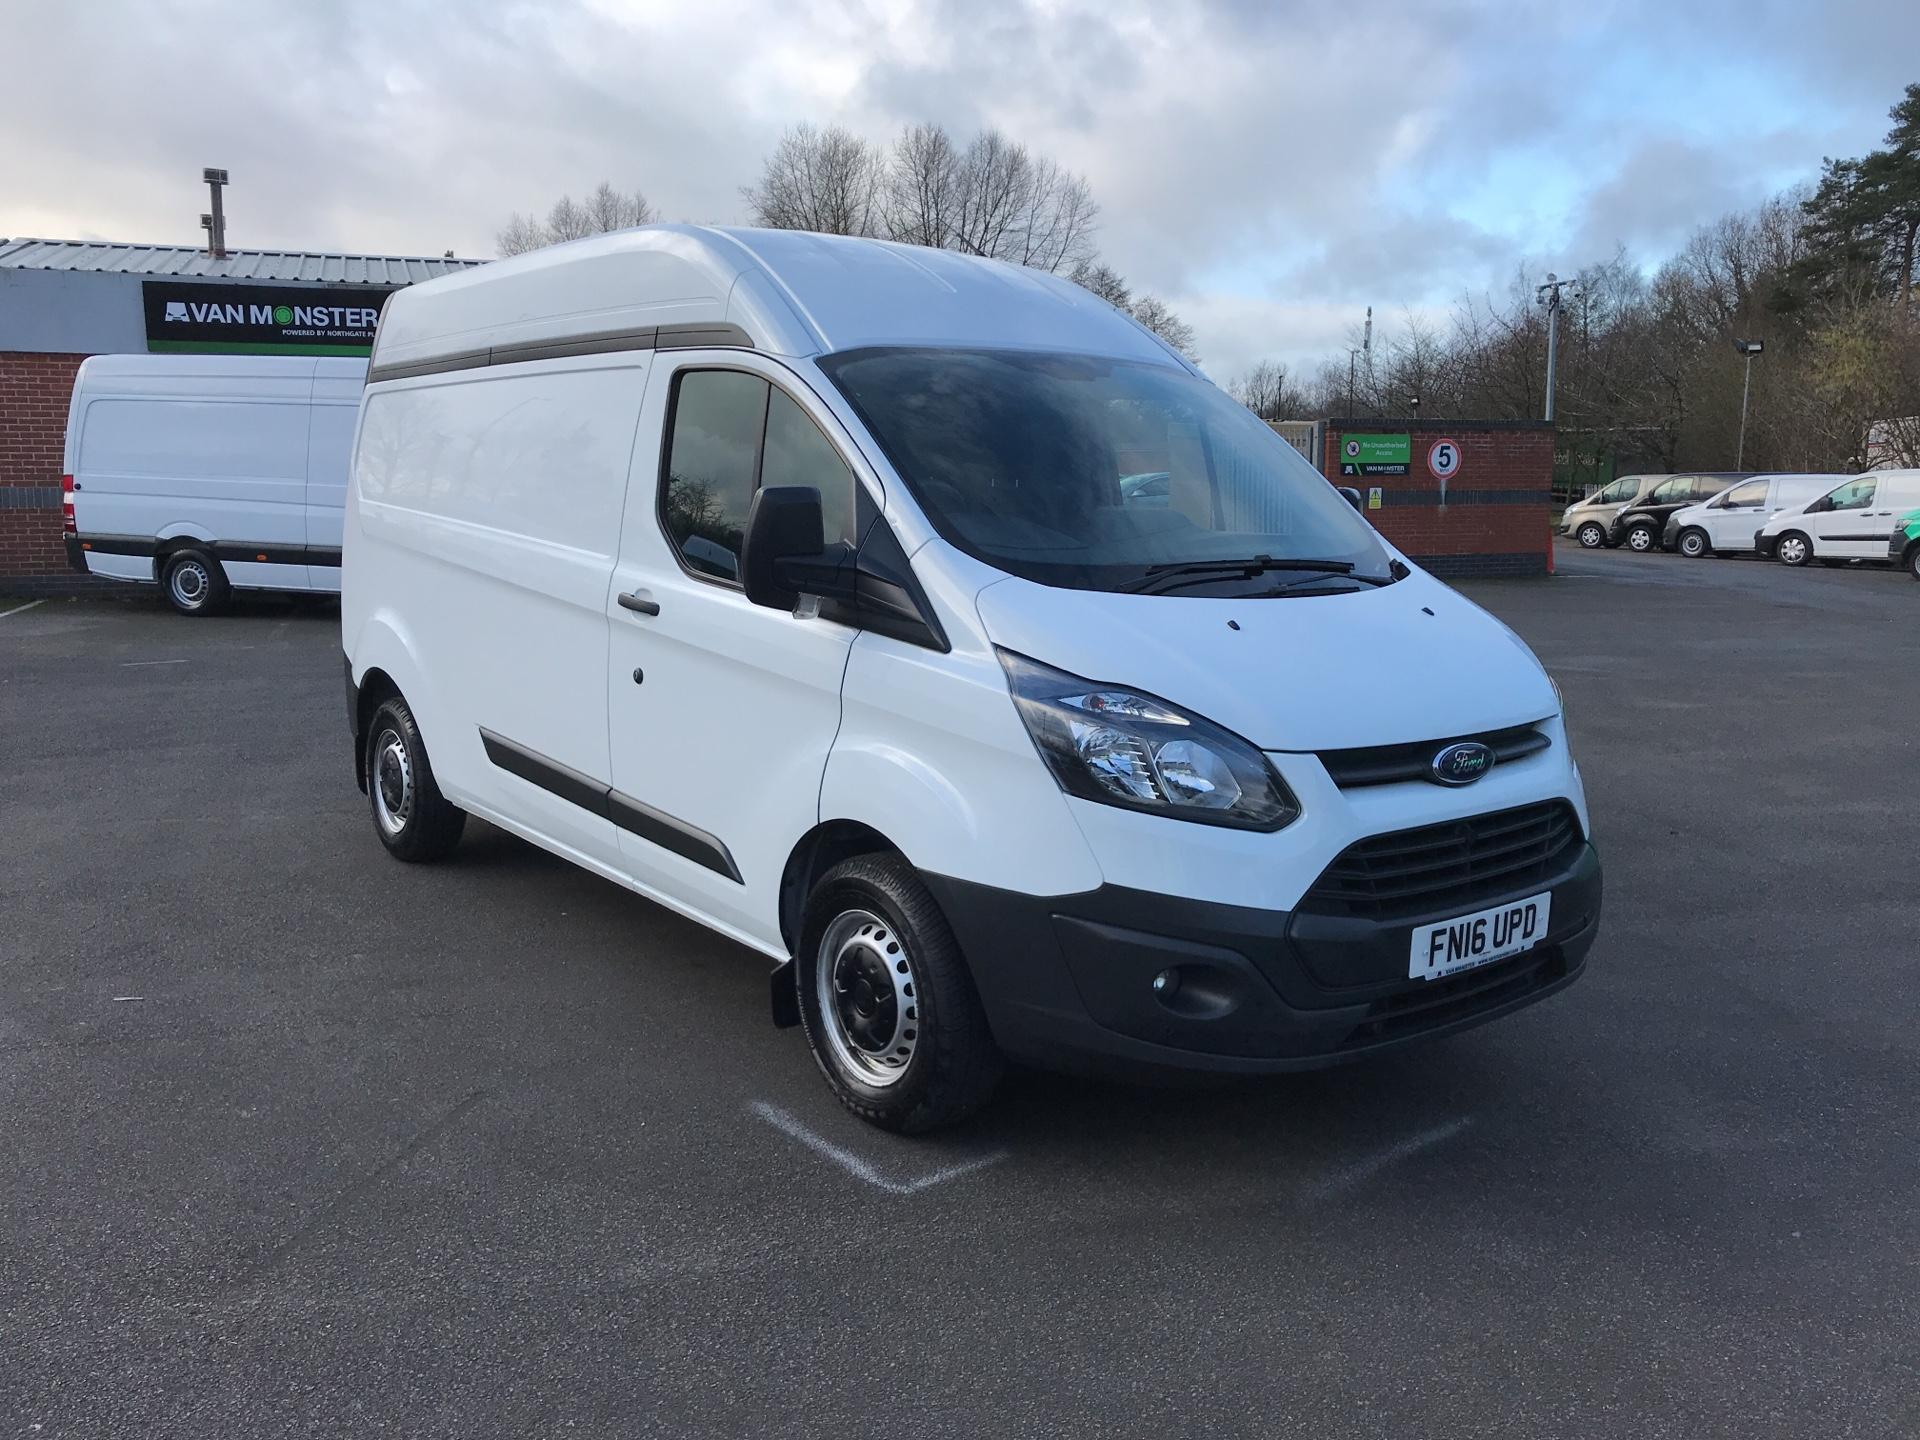 2016 Ford Transit Custom 290 L2 DIESEL FWD 2.2 TDCI 100PS HIGH ROOF VAN EURO 5 SPEED LIMITER FITTED *VALUE RANGE VEHICLE - CONDITION REFLECTED IN PRICE* (FN16UPD)